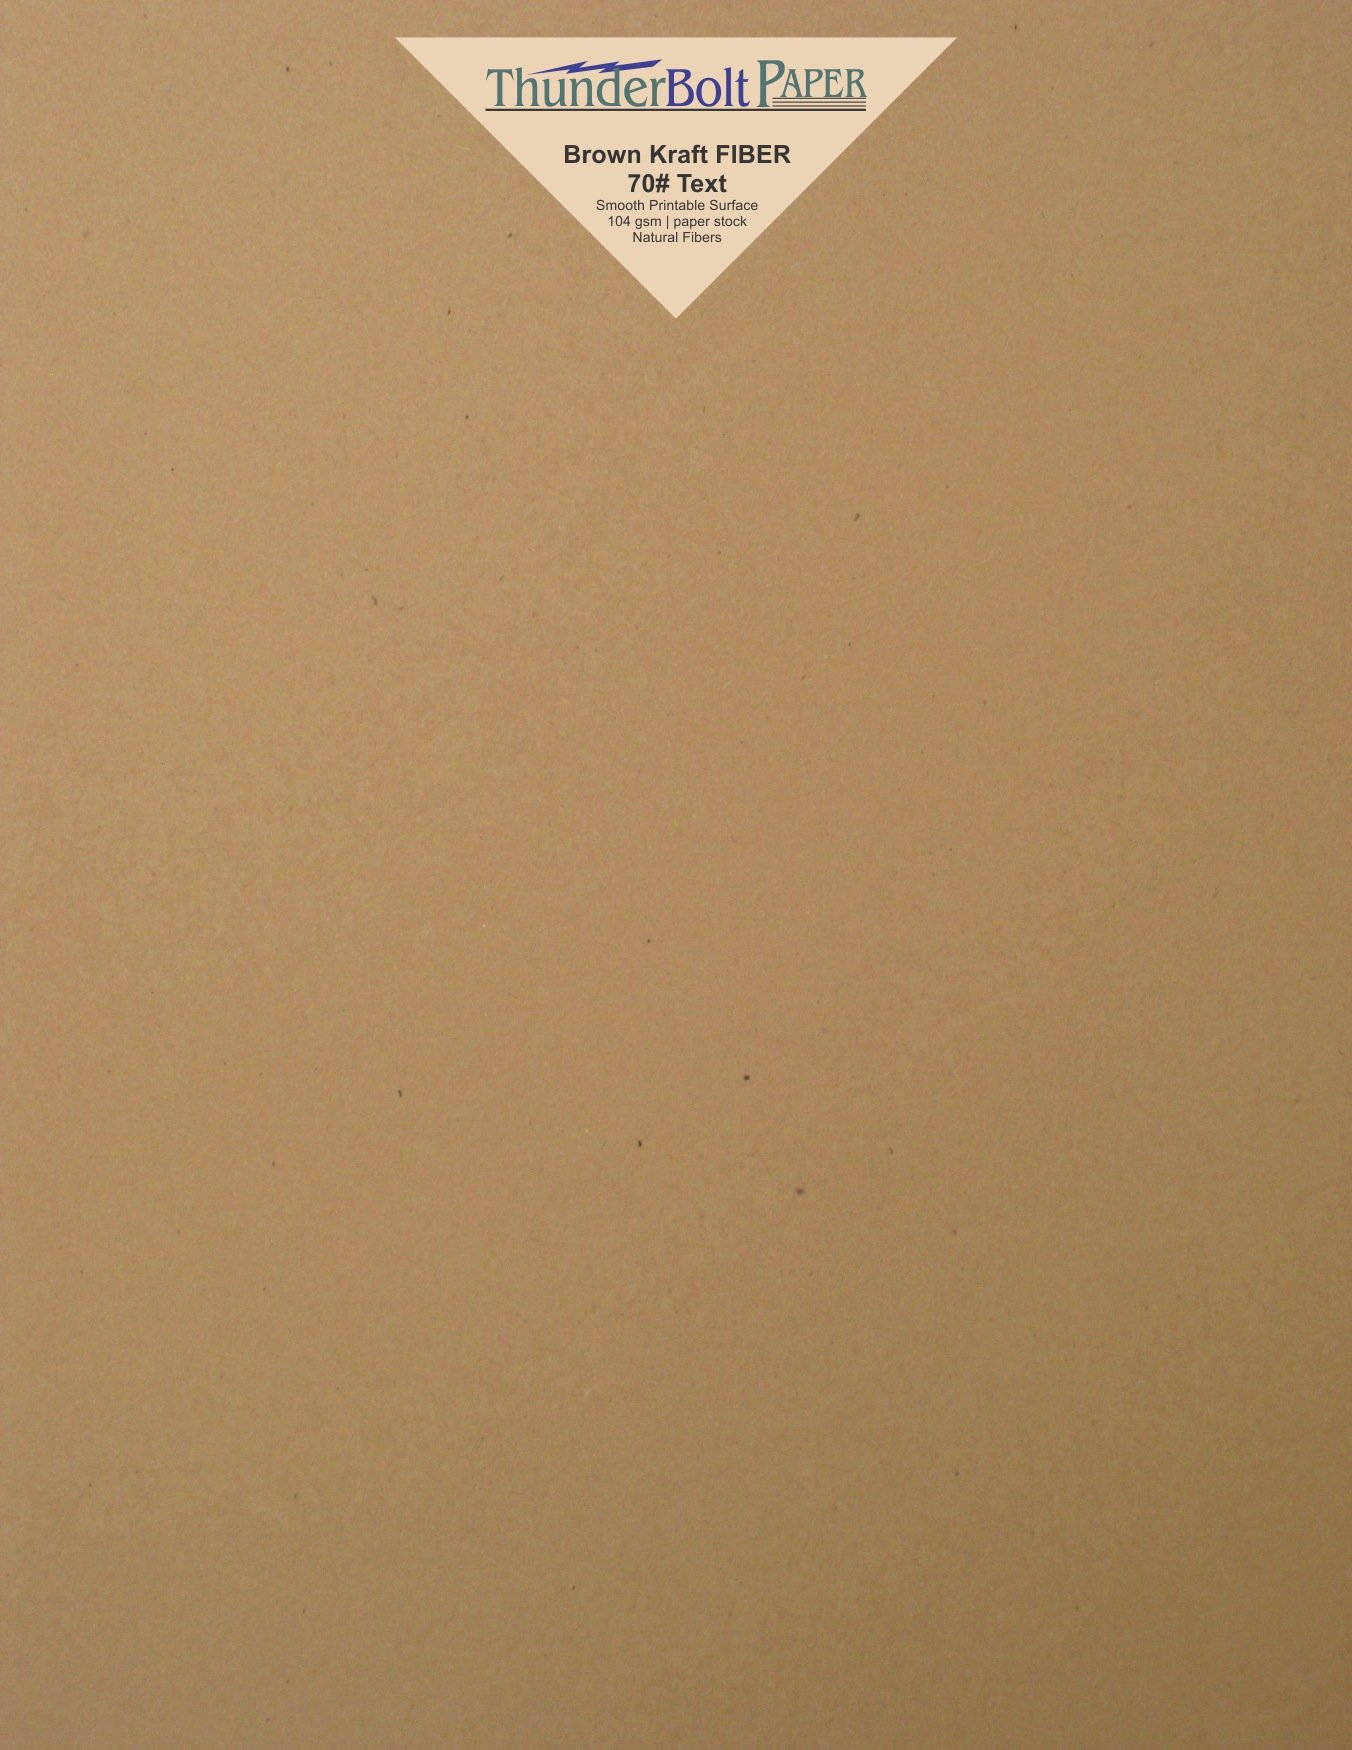 100 Brown Kraft Fiber 28/70 Pound Text (Not Card/Cover) Paper Sheets - 8.5'' X 11'' (8.5X11 Inches) Standard Letter|Flyer Size - Rich Earthy Color with Natural Fibers - Smooth Finish